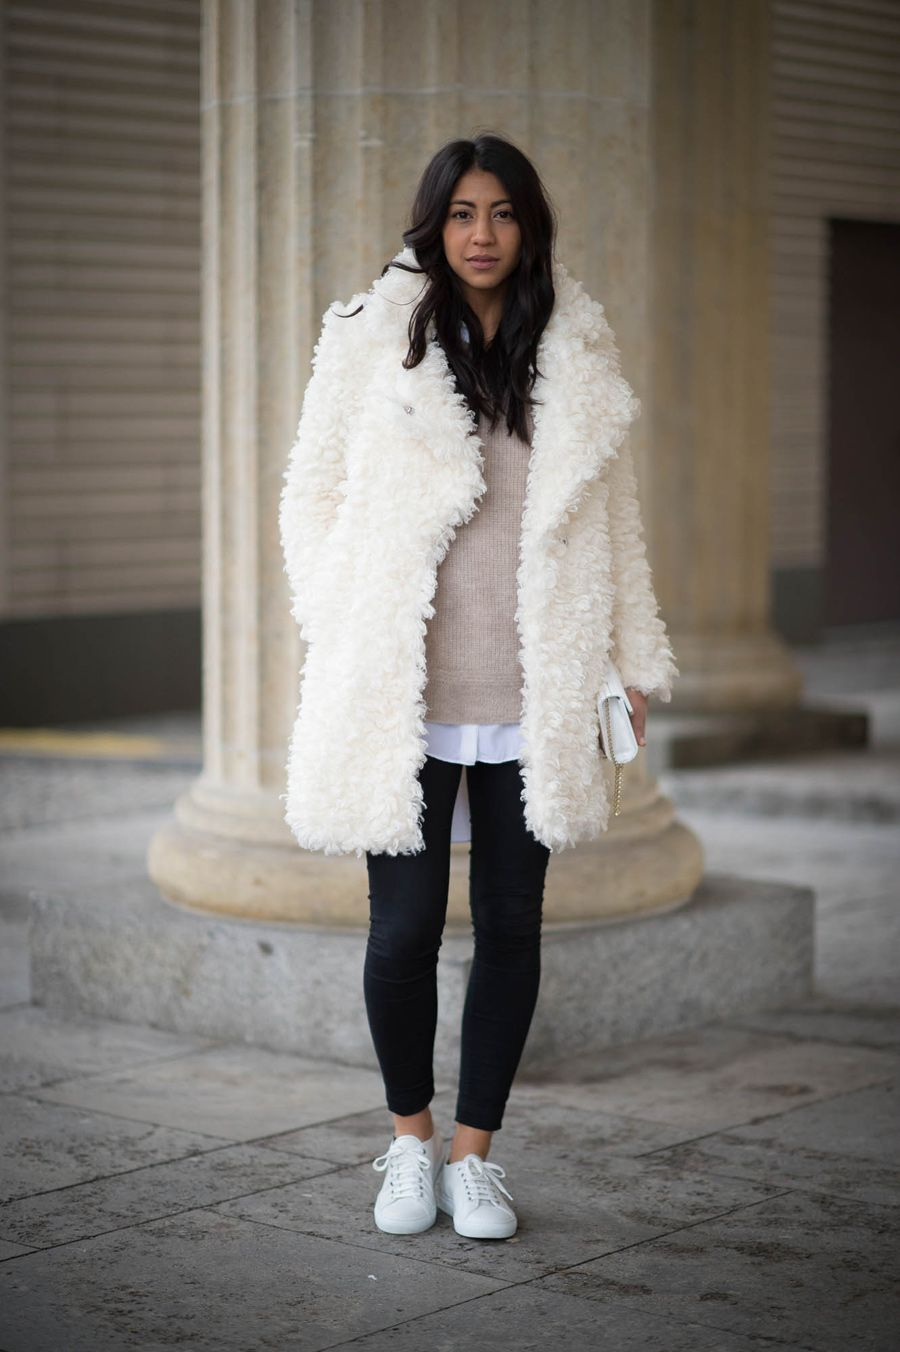 berlin fashion week: day 4 | not your standard #streetstyle